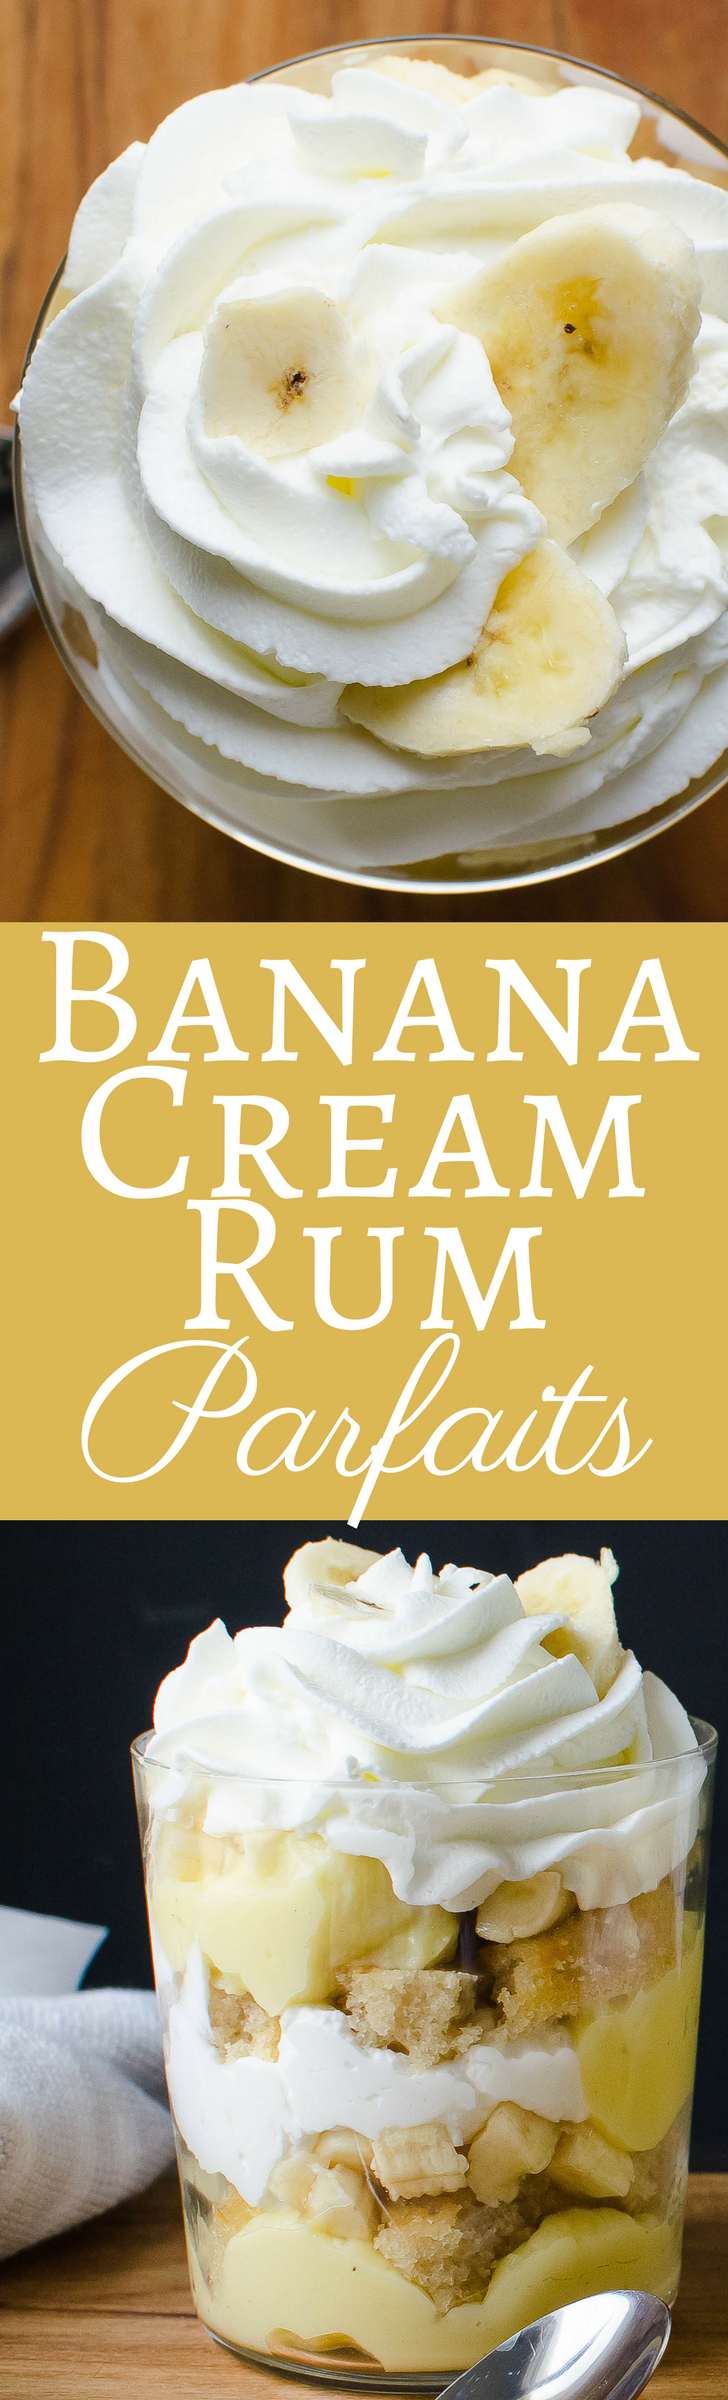 Better than the best Banana Pudding you ever had because this recipe is soaked in rum! Banana Cream Rum Parfaits!